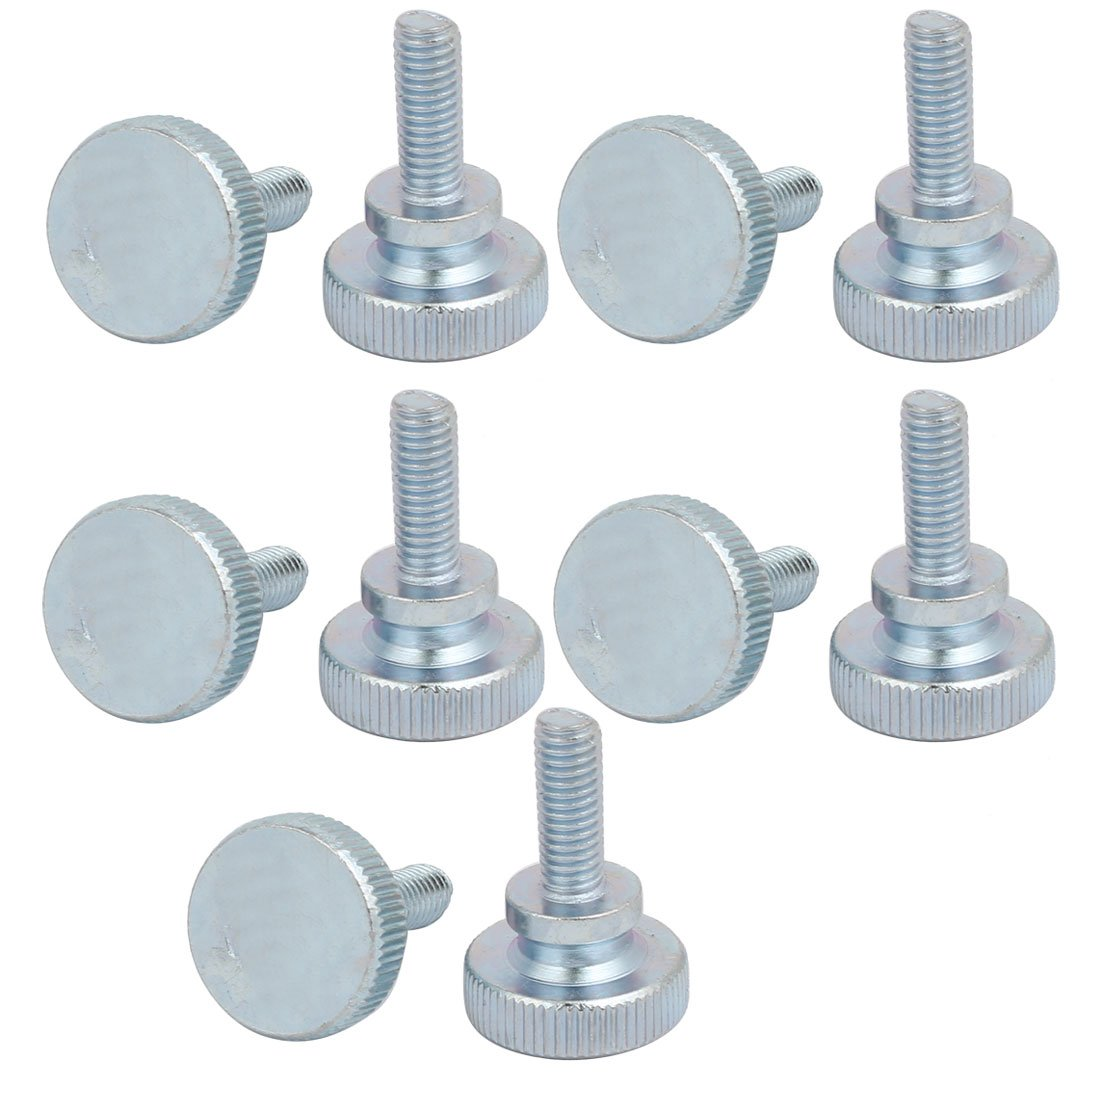 uxcell M6x16mm Carbon Steel Flat Knurled Head Fully Threaded Thumb Screw Bolt 10pcs by uxcell